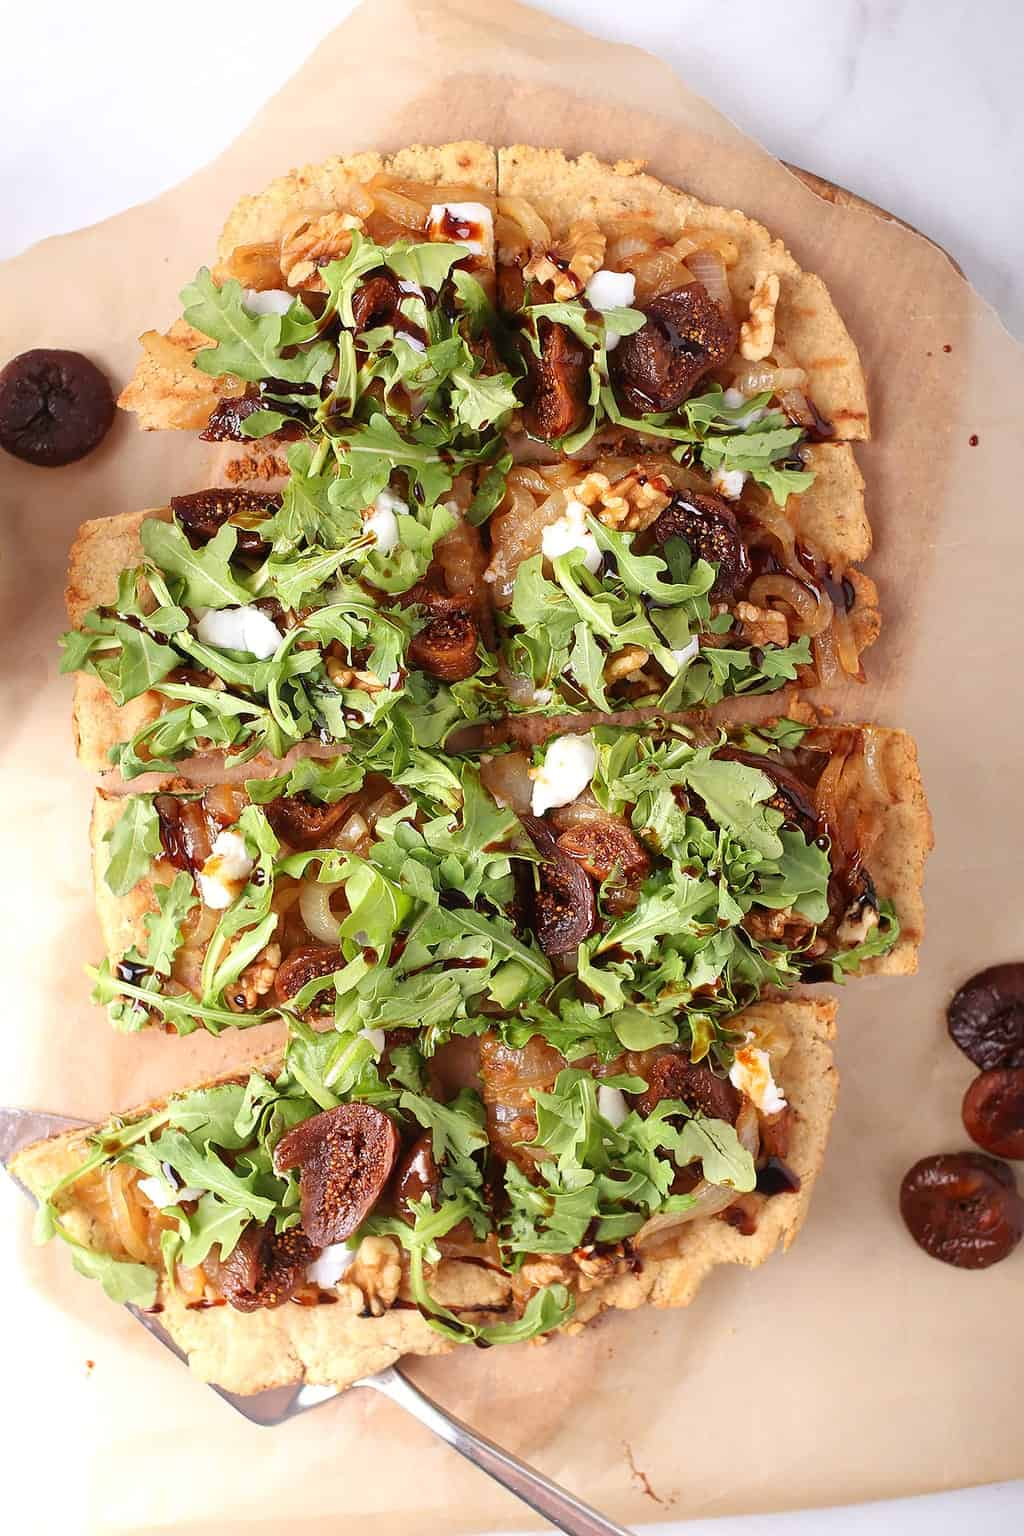 Vegan grilled flatbread topped with arugula and figs